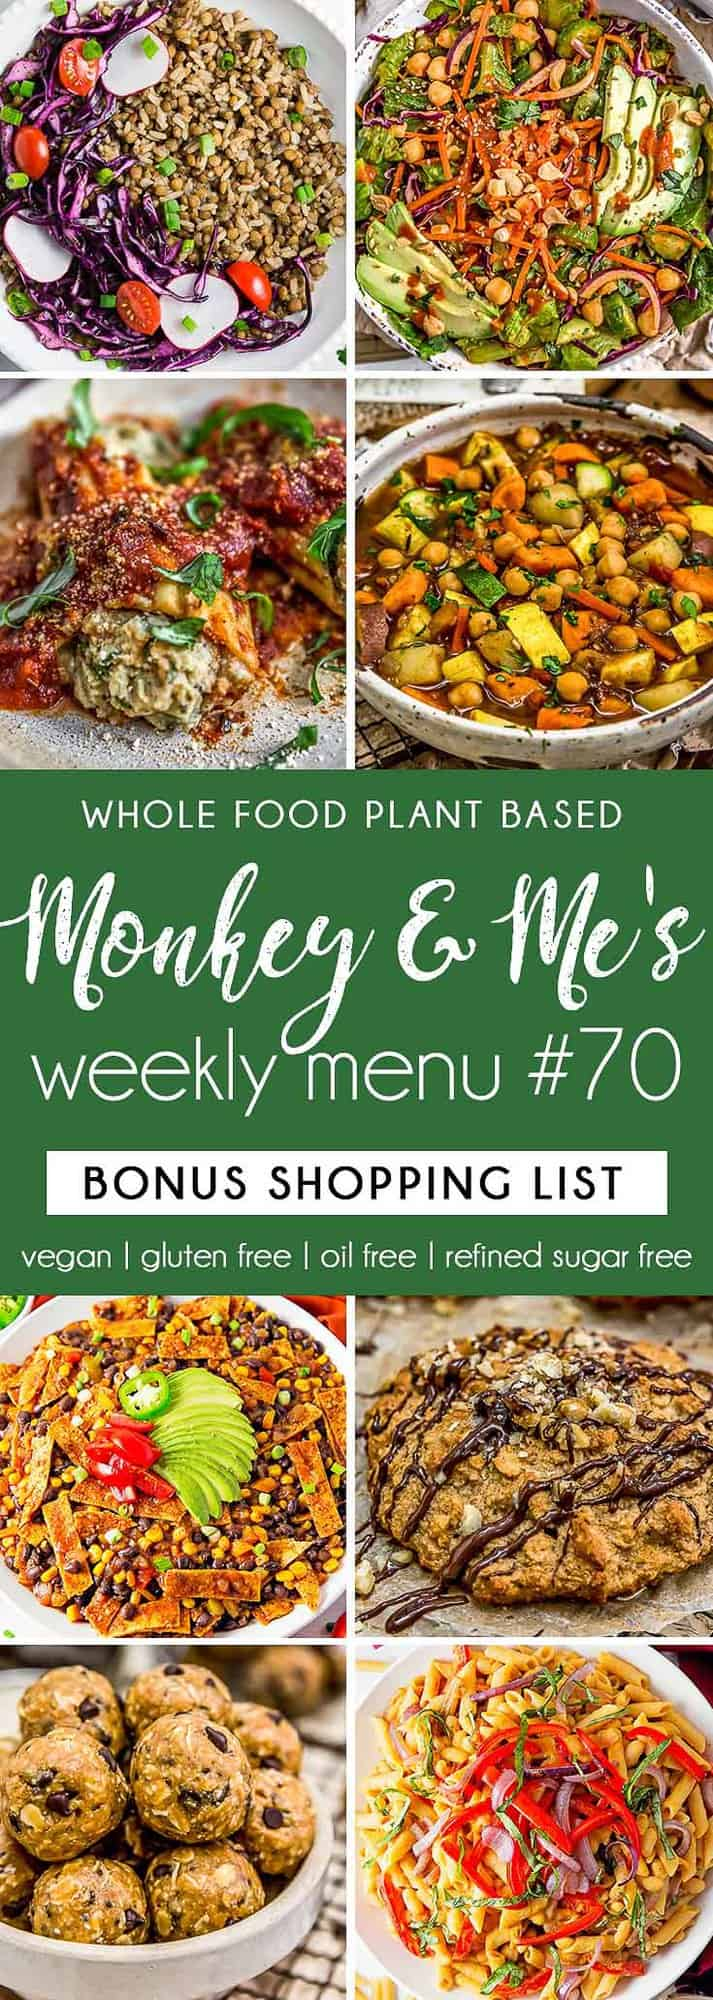 Monkey and Me's Menu 70 featuring 8 recipes